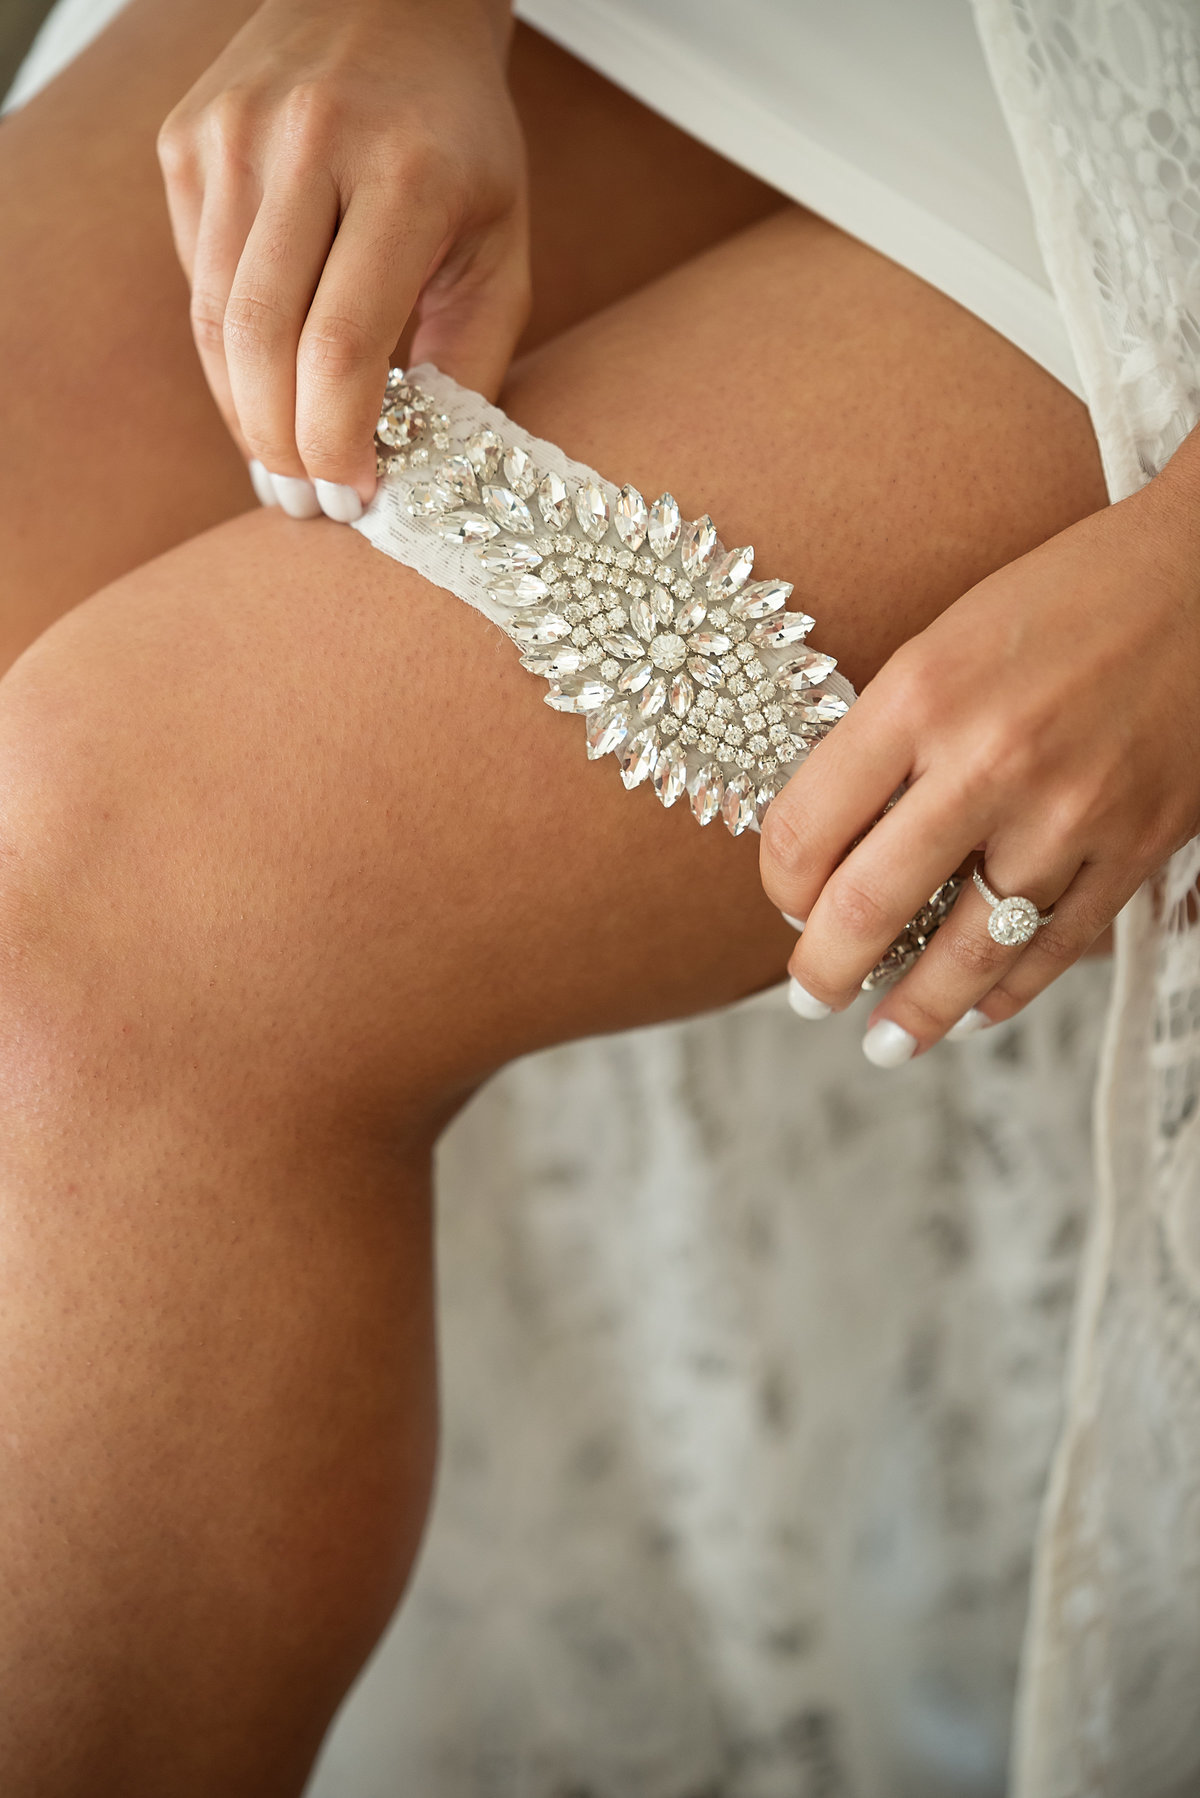 Sparkly wedding garter